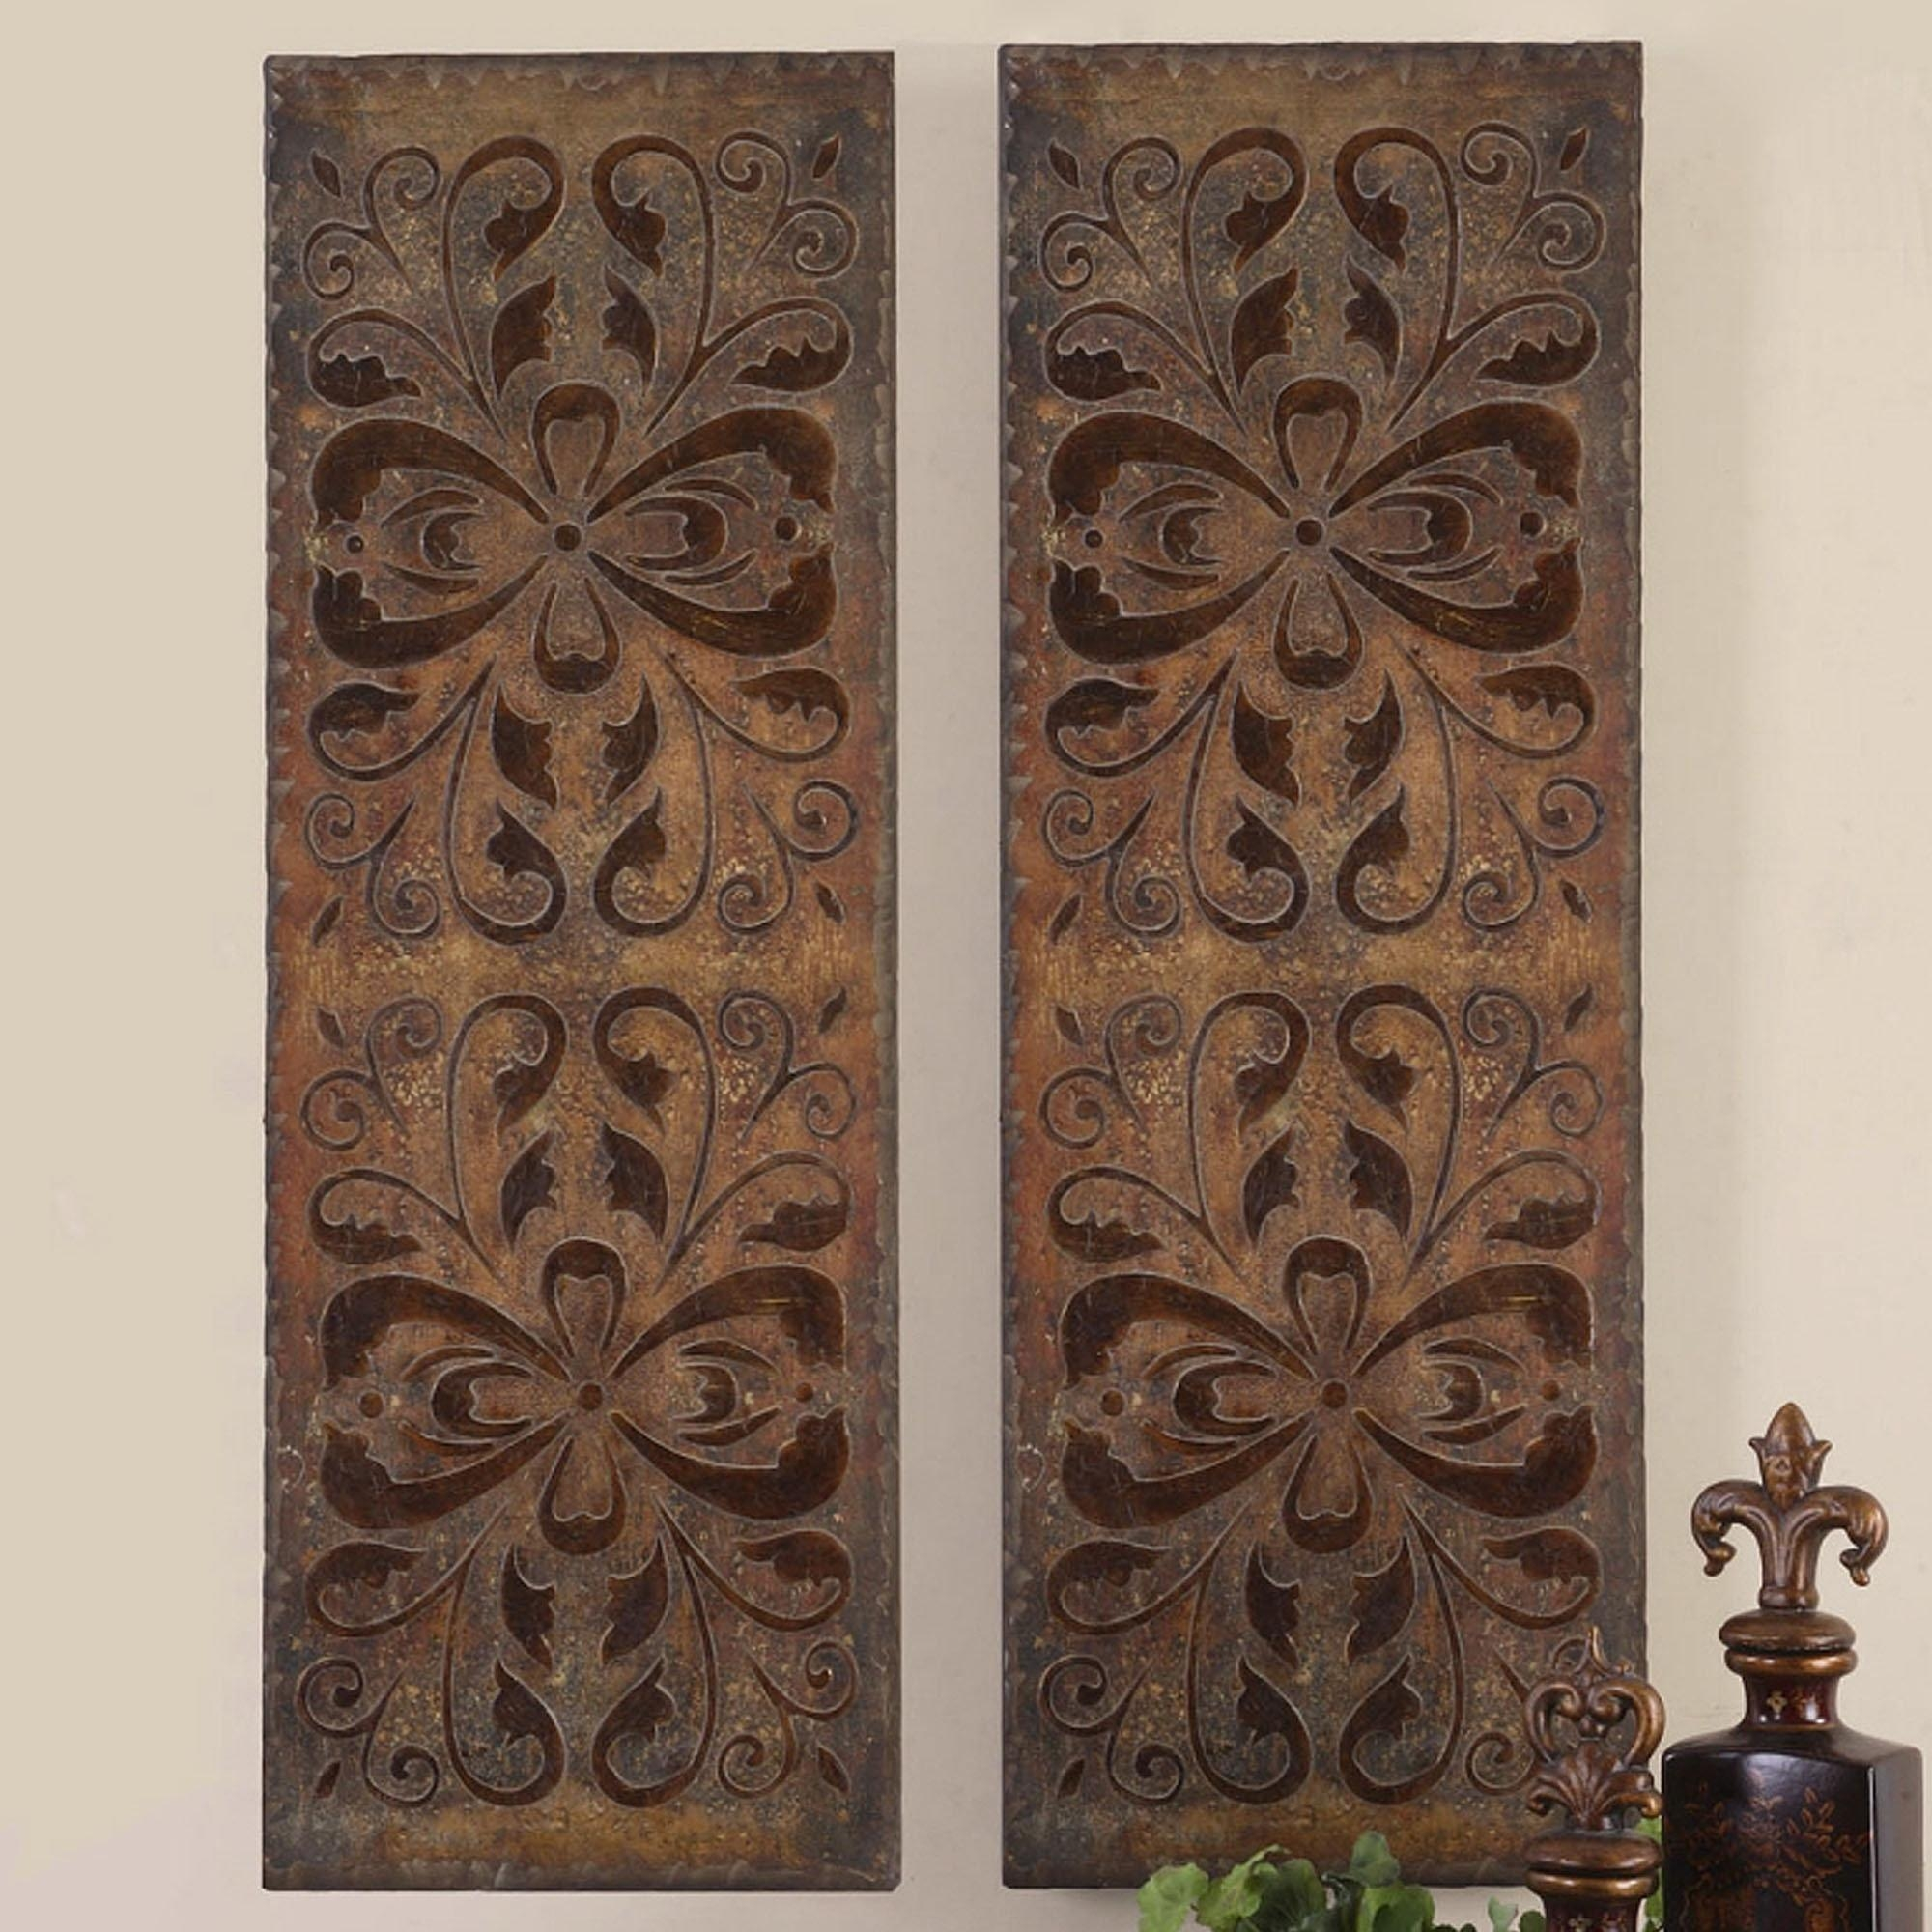 Home Design : Lovely Wood Panel Wall Decor 5 Carved Panels Art With Regard To Wood Carved Wall Art Panels (Image 8 of 20)